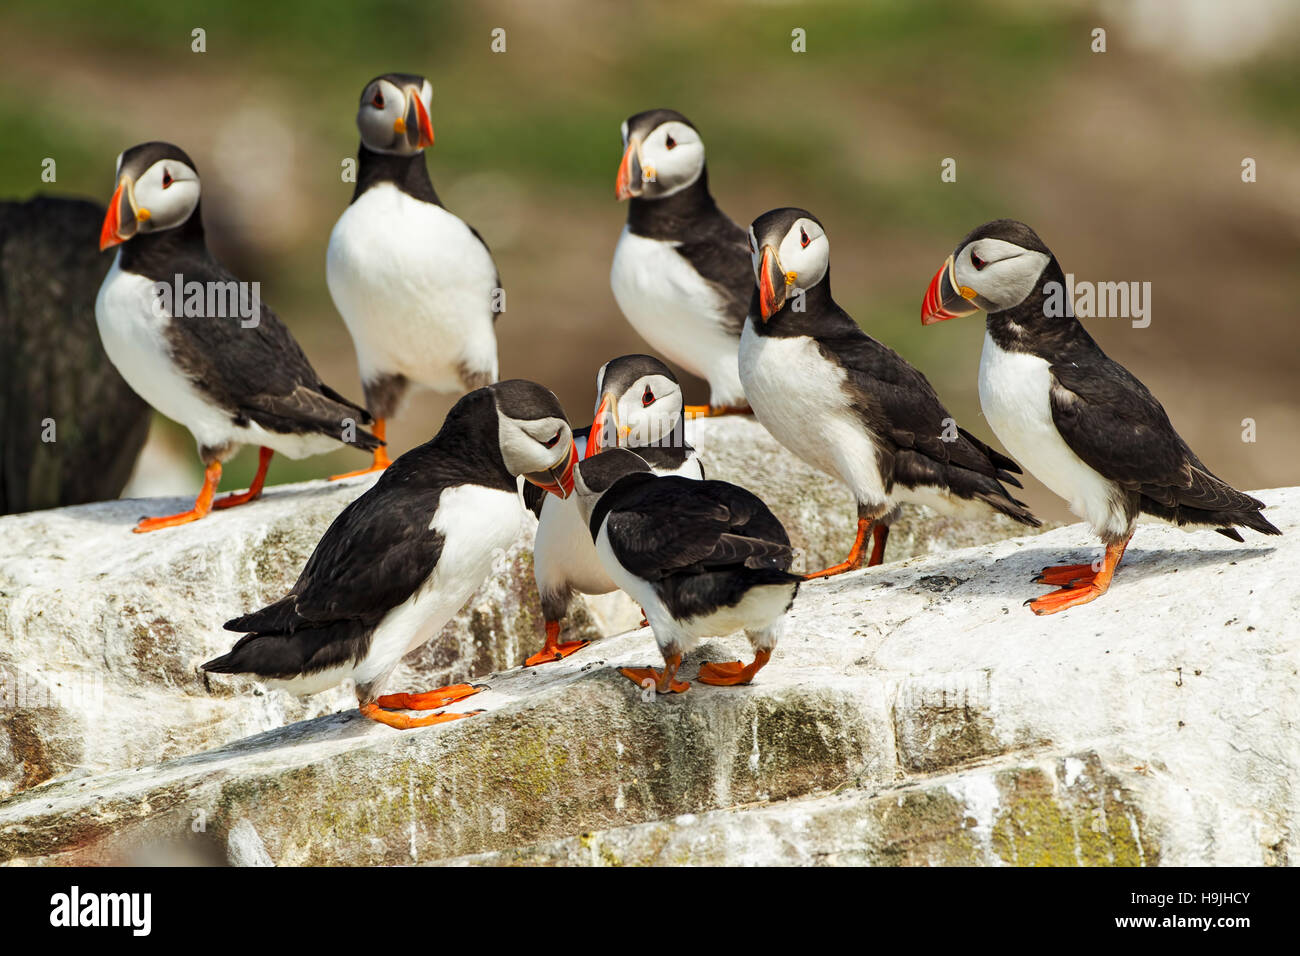 Group of 3 Puffins hitting each others beaks while 5 other puffins look on; - Stock Image